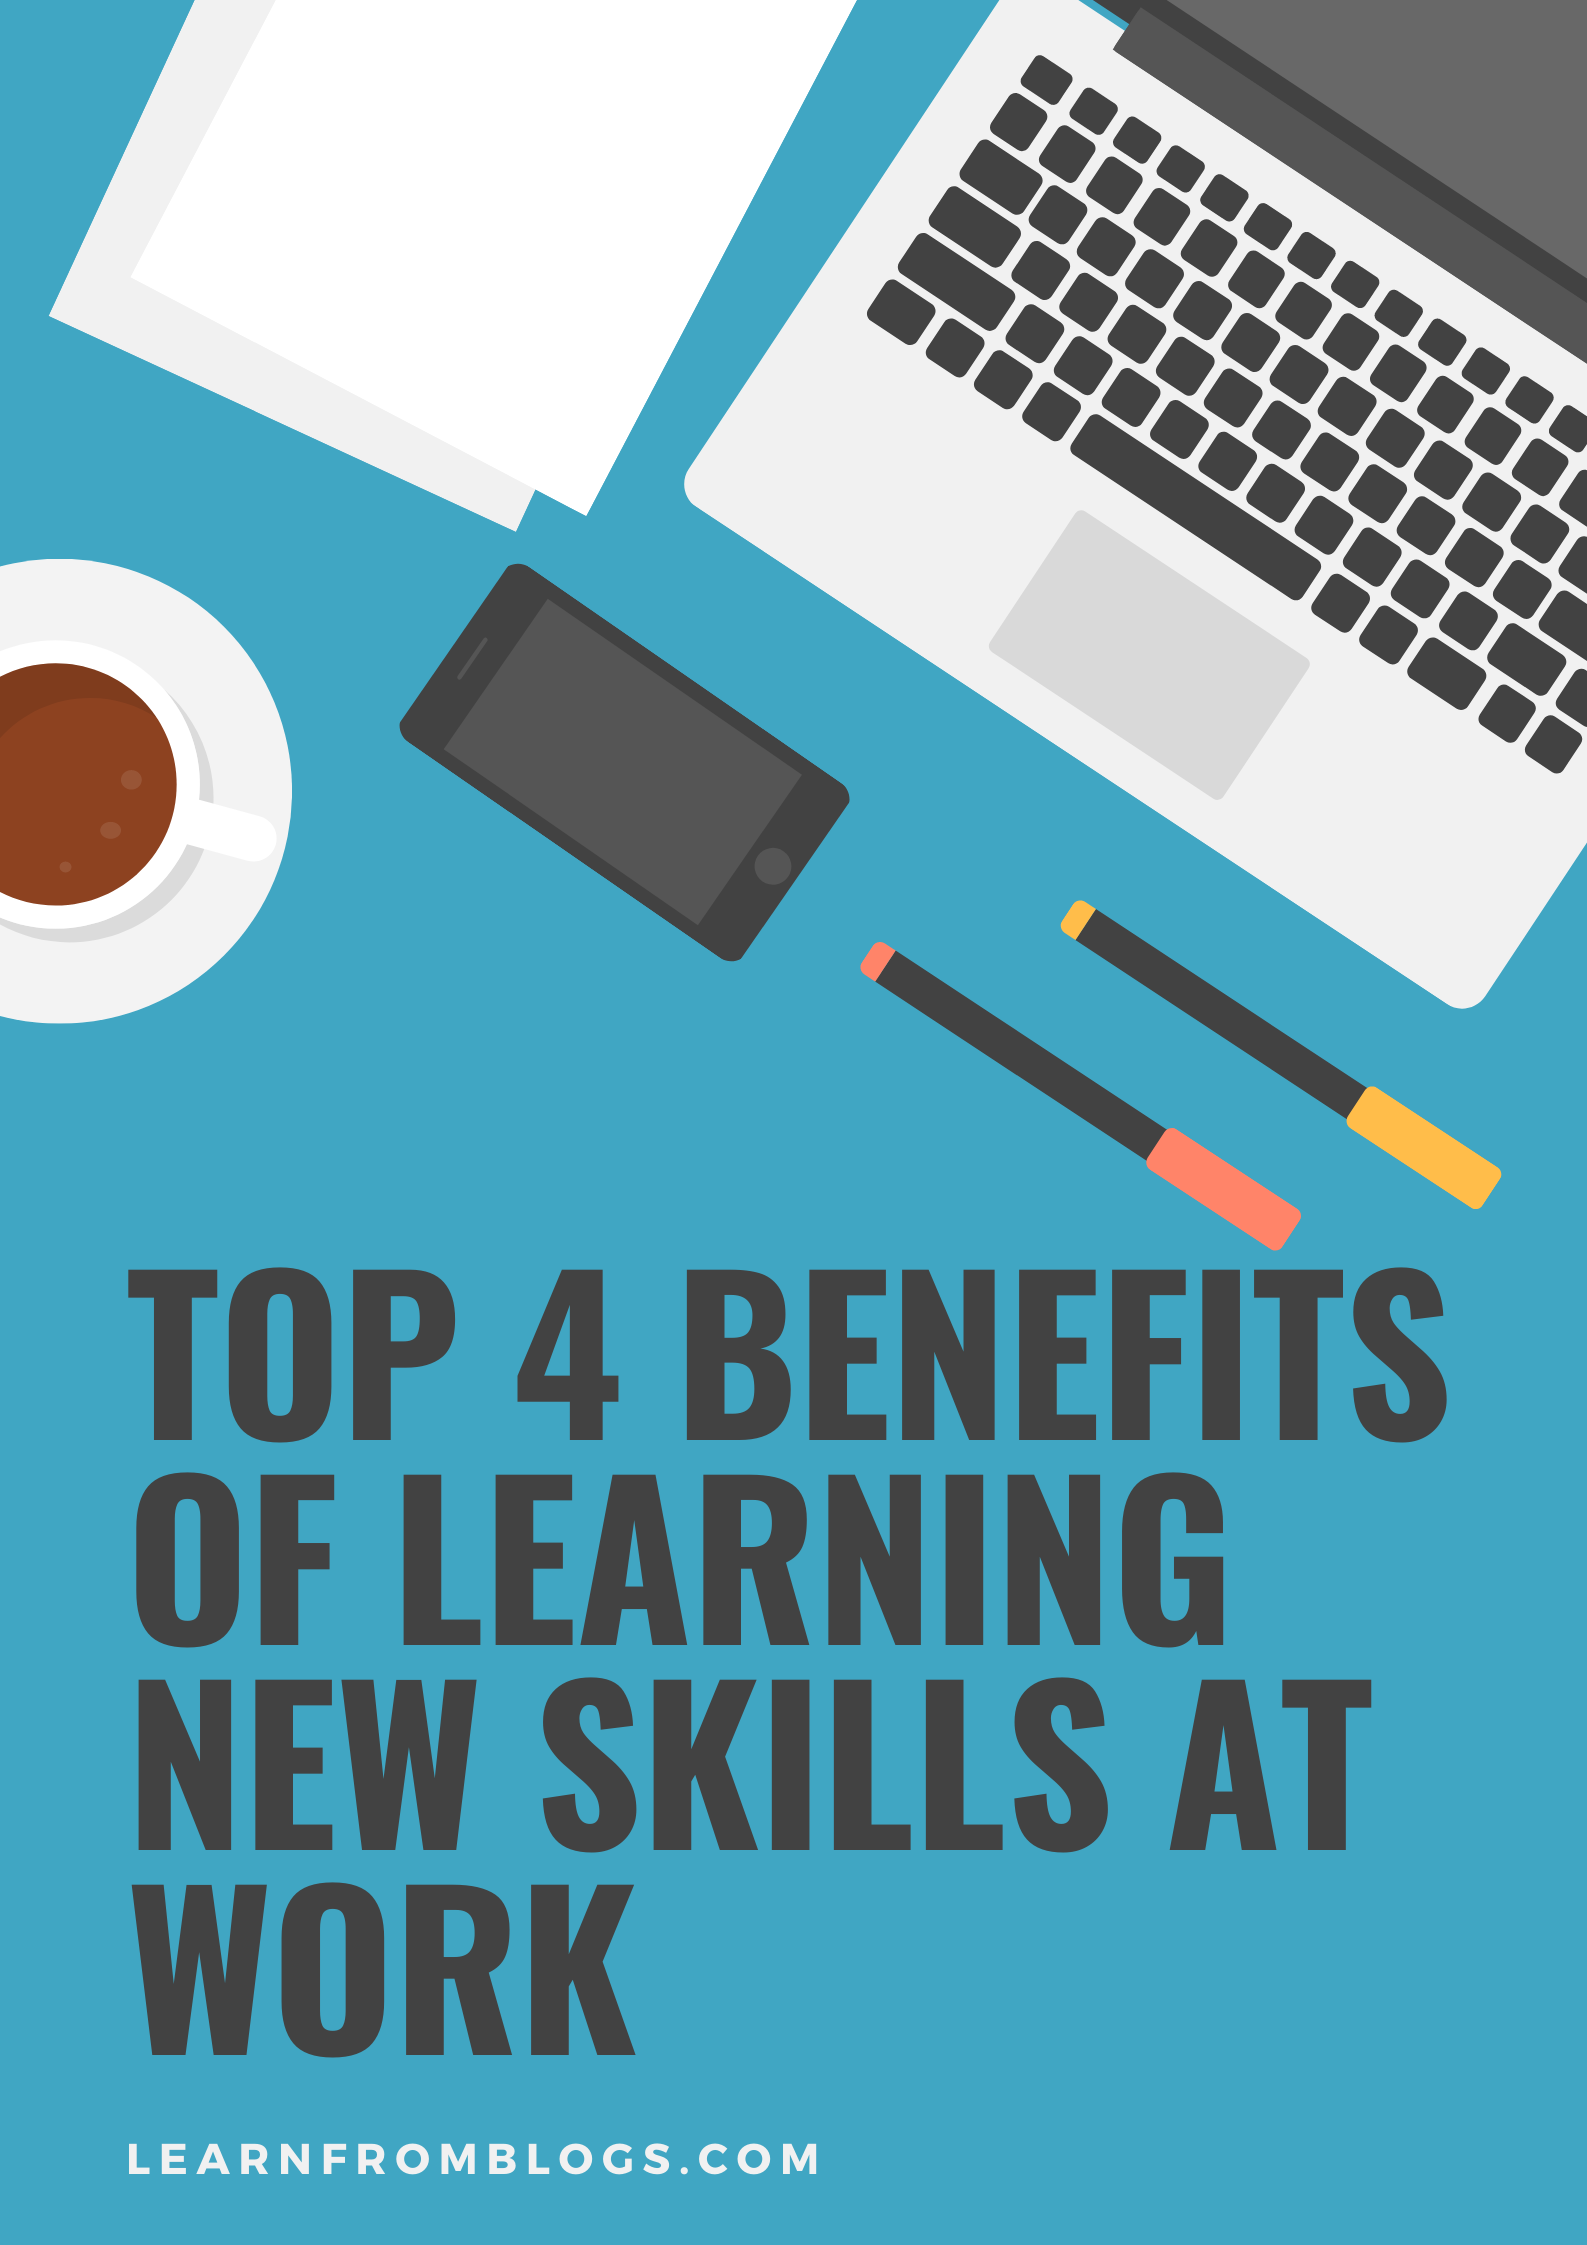 Top 4 Benefits Of Learning New Skills At Work.png